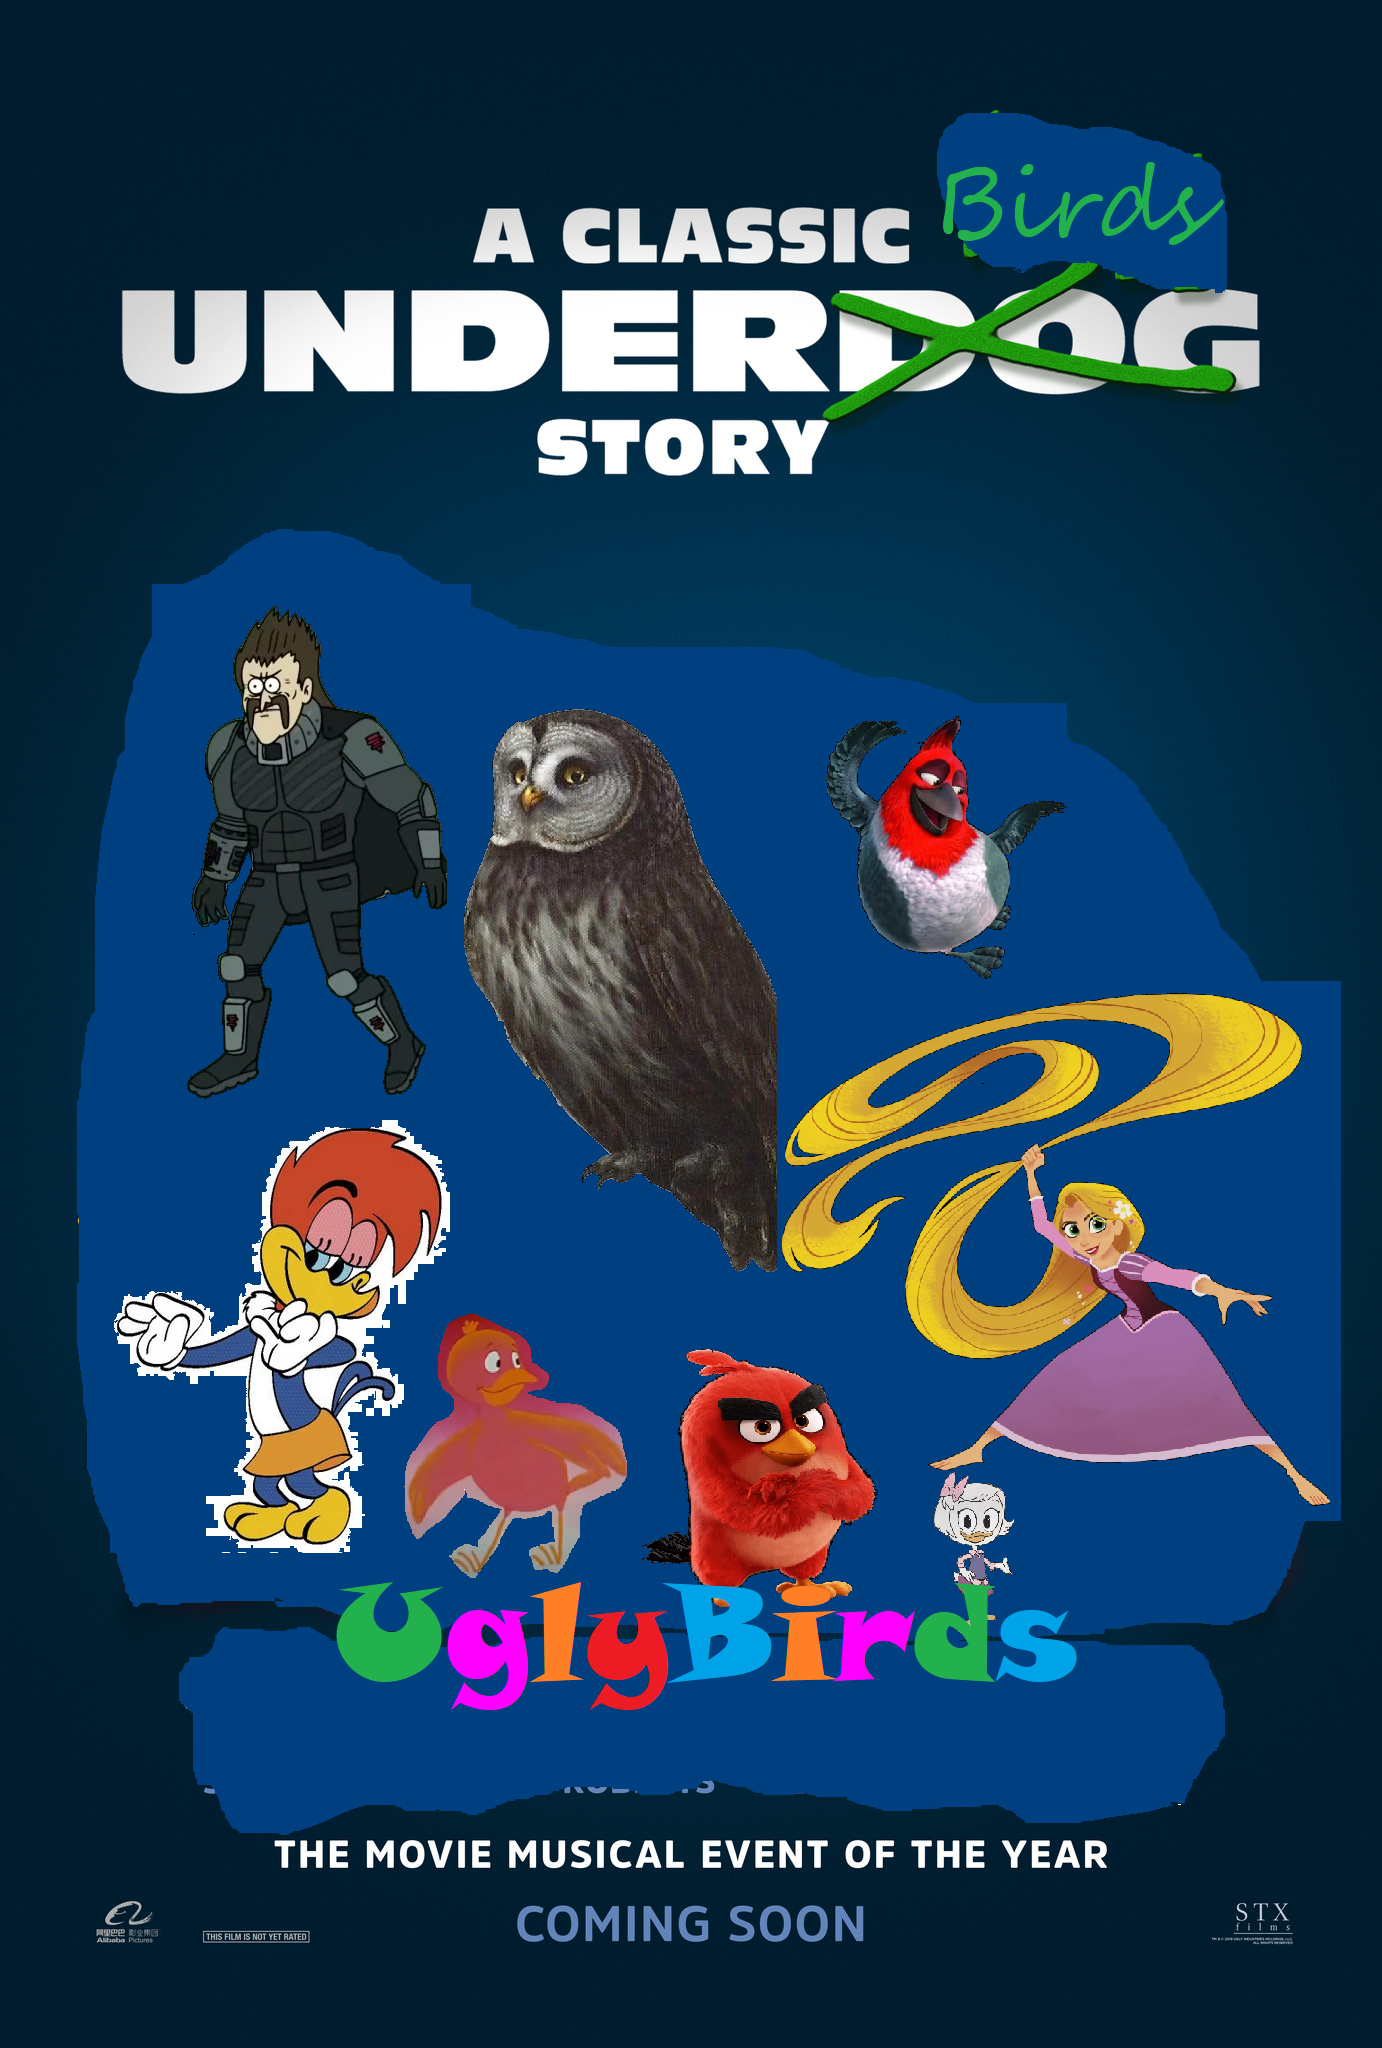 UglyBirds (2019)